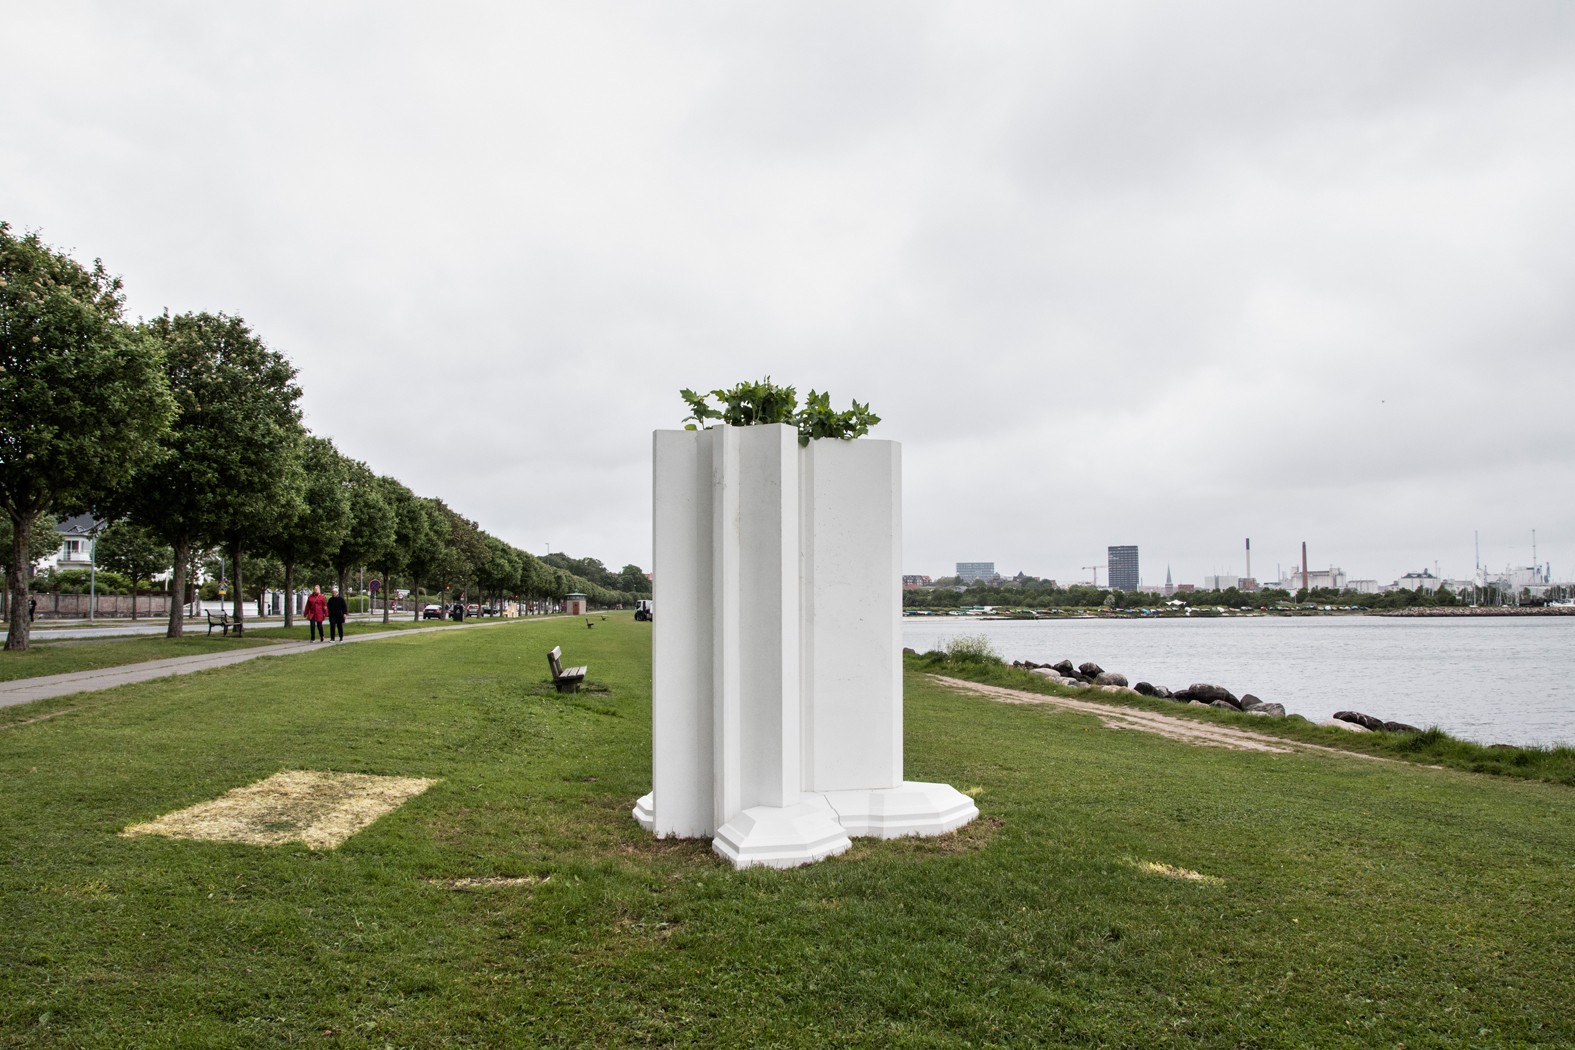 Aros Triennale The Garden, The present og The future billedserie</br>Superflex: Investment Bank Flowerpots, Aros Triennale The Garden.</br>Foto: Mariana Gil